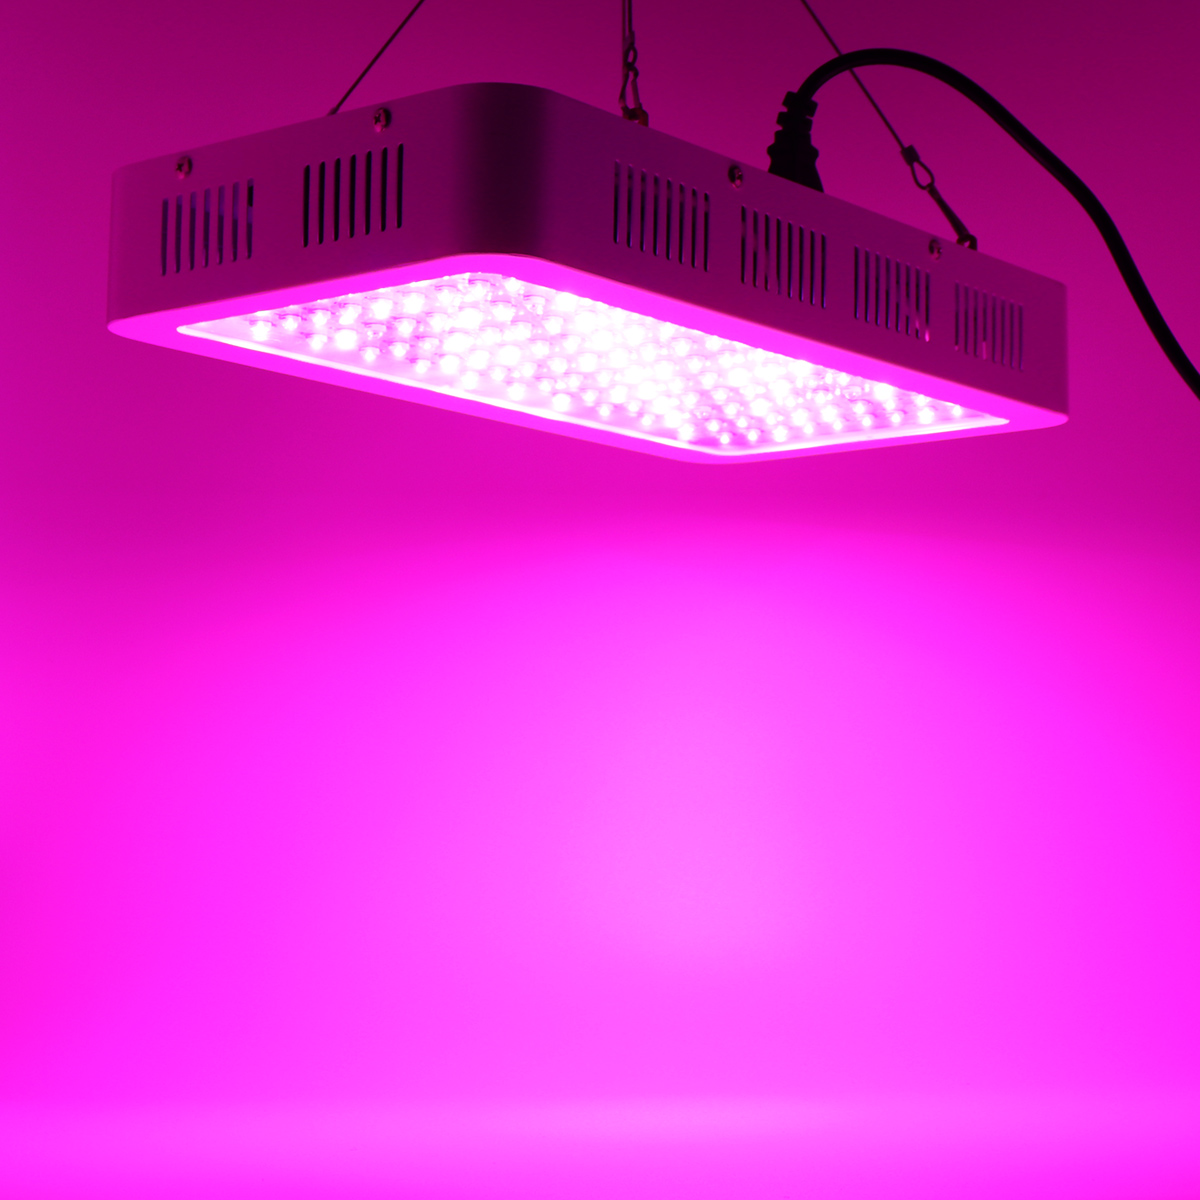 120 LED Plant Grow Light 1200W Full Spectrum Sunlike Plant Light Dual Chip with ON/Off Switch for Indoor Plants / Seedling / Succulents / Growing / Blooming